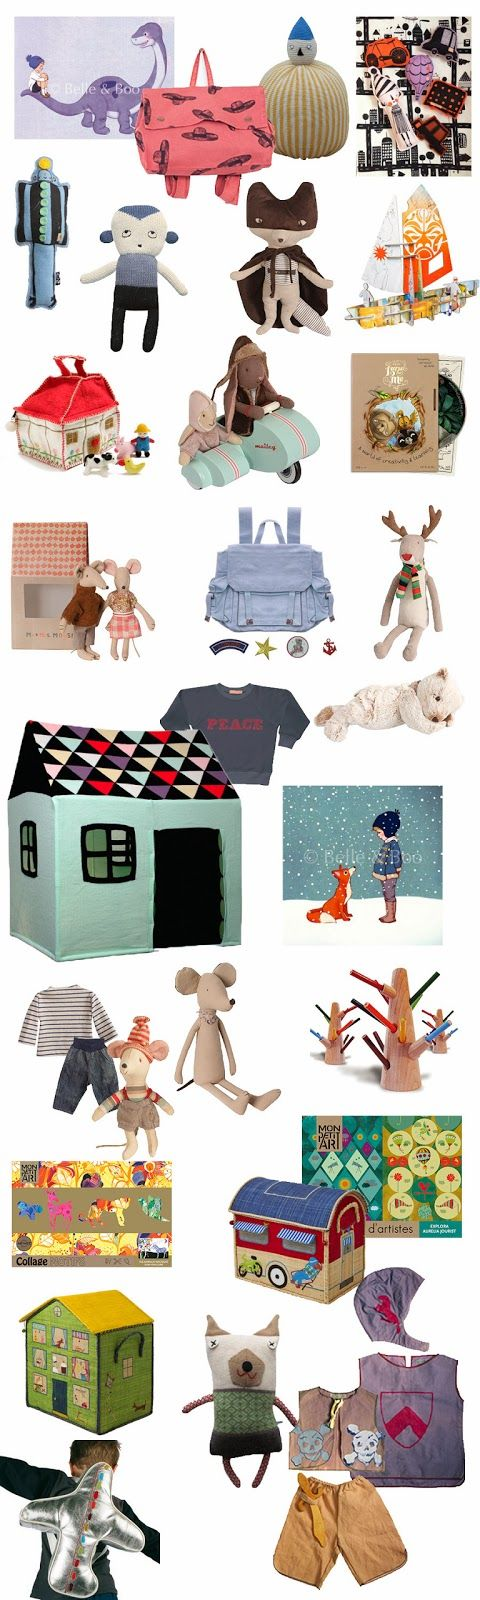 an amazing gift guide for the coolest children's gifts put together for Lattes and Juice by @Ciara Byars Guild